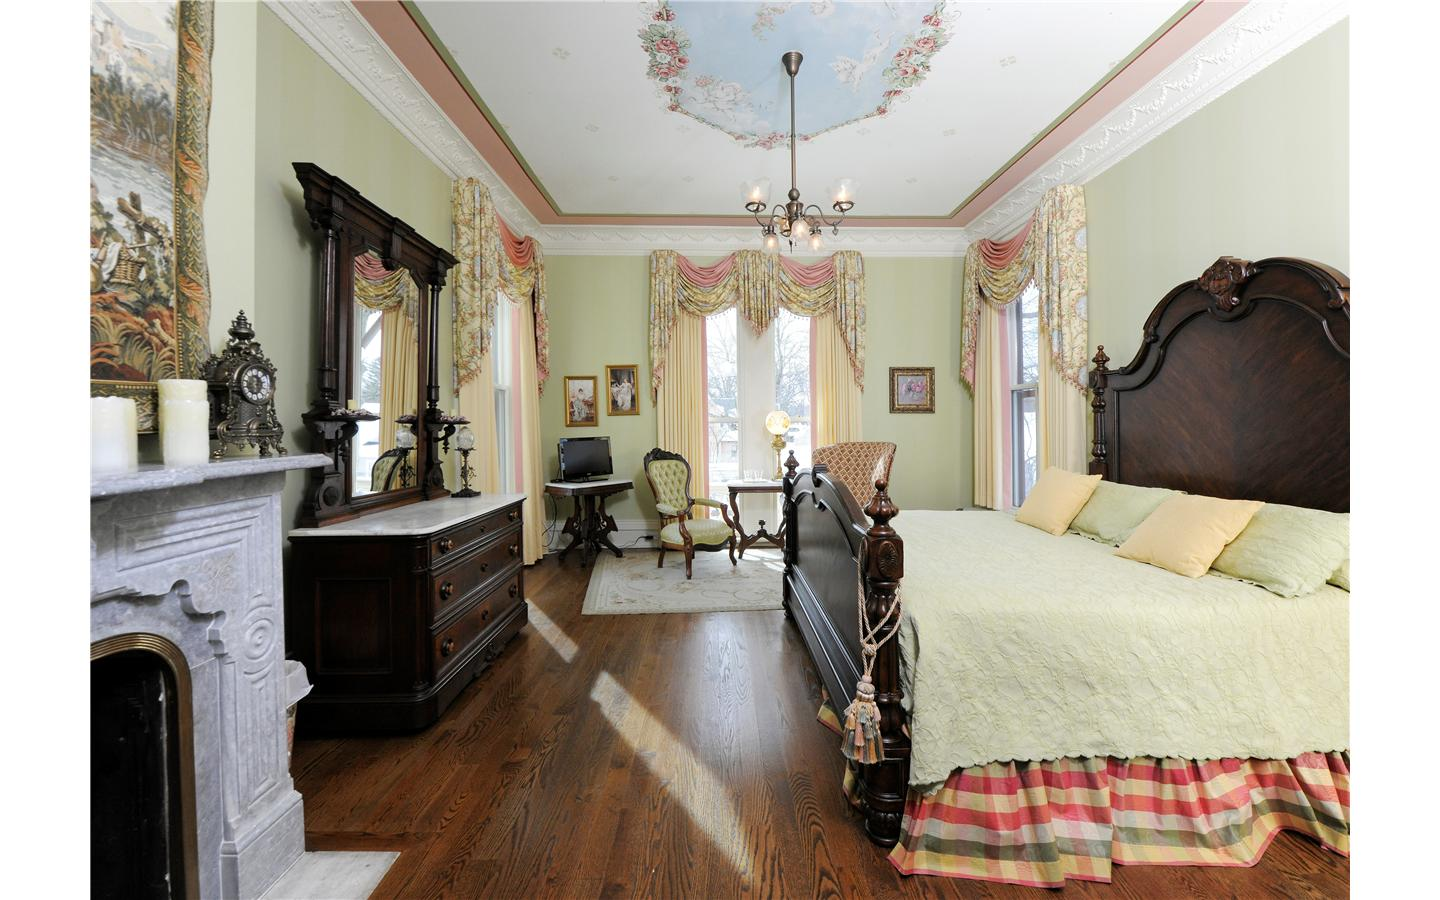 Silas Robbins Cupids and Roses Room